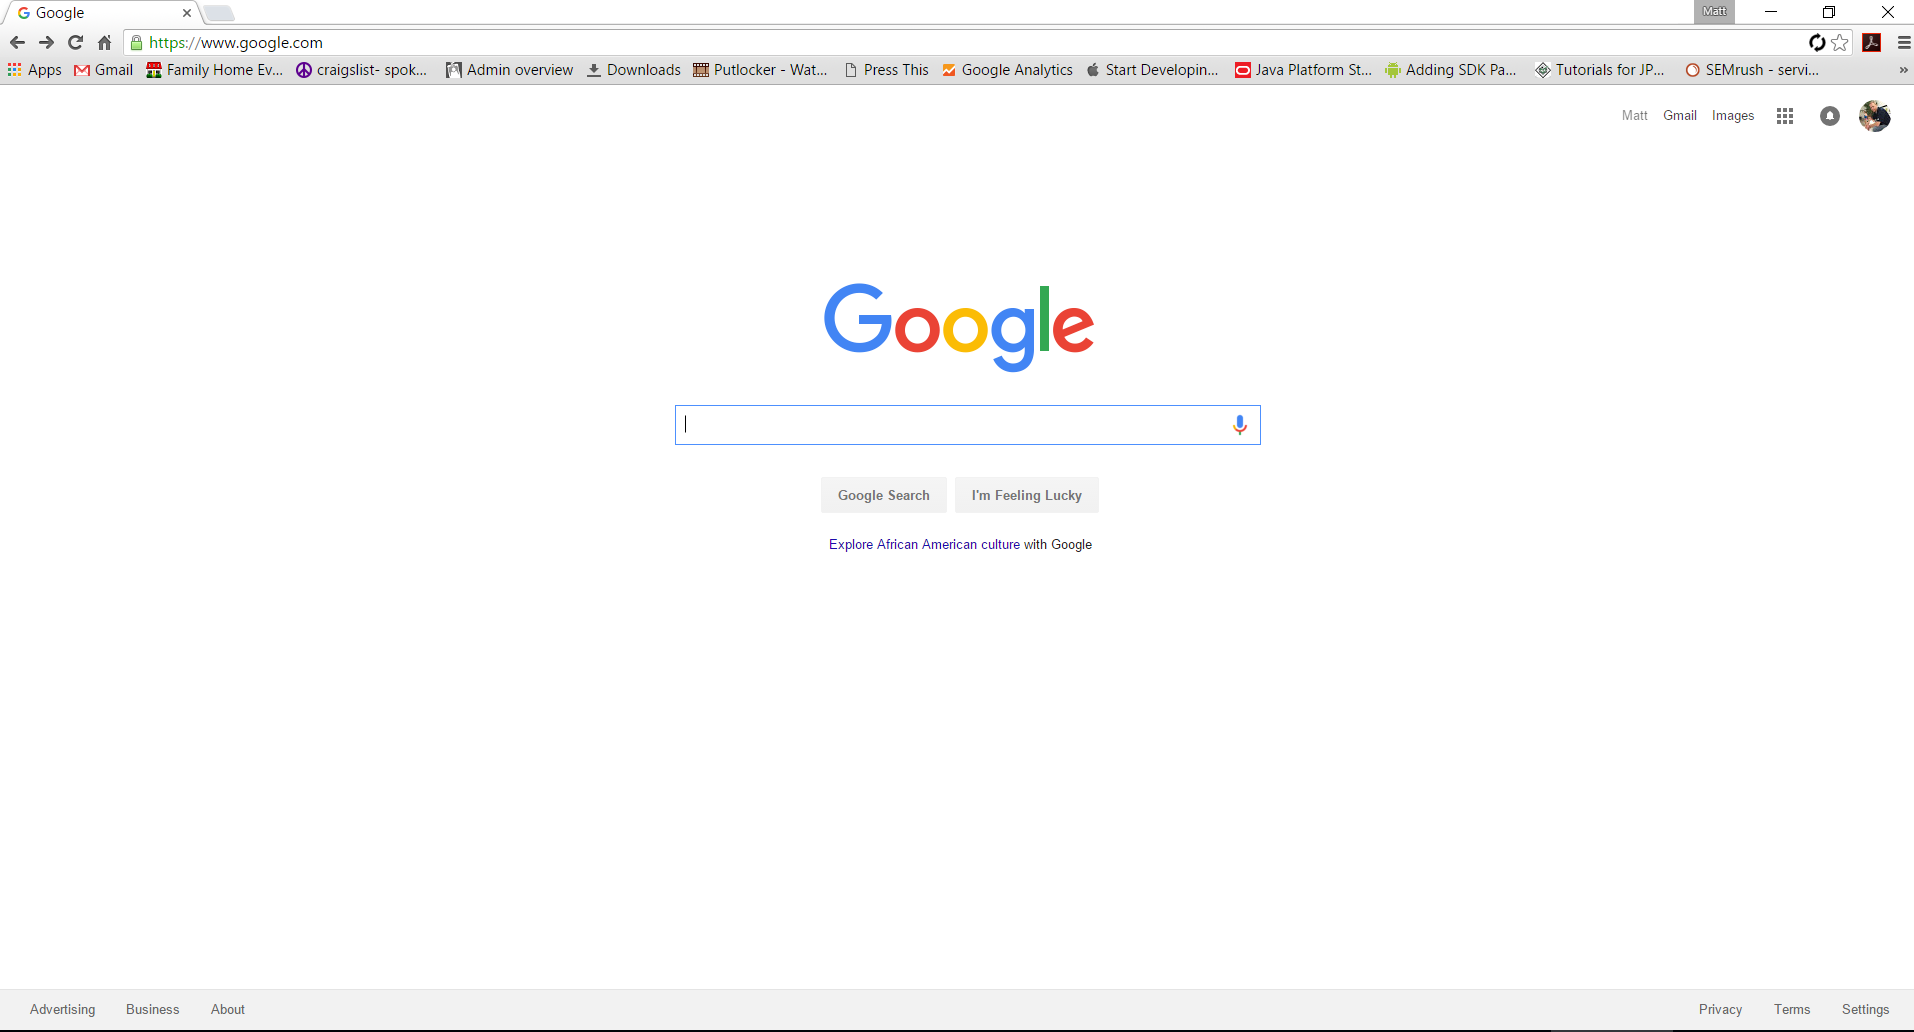 Google home page (logged in)